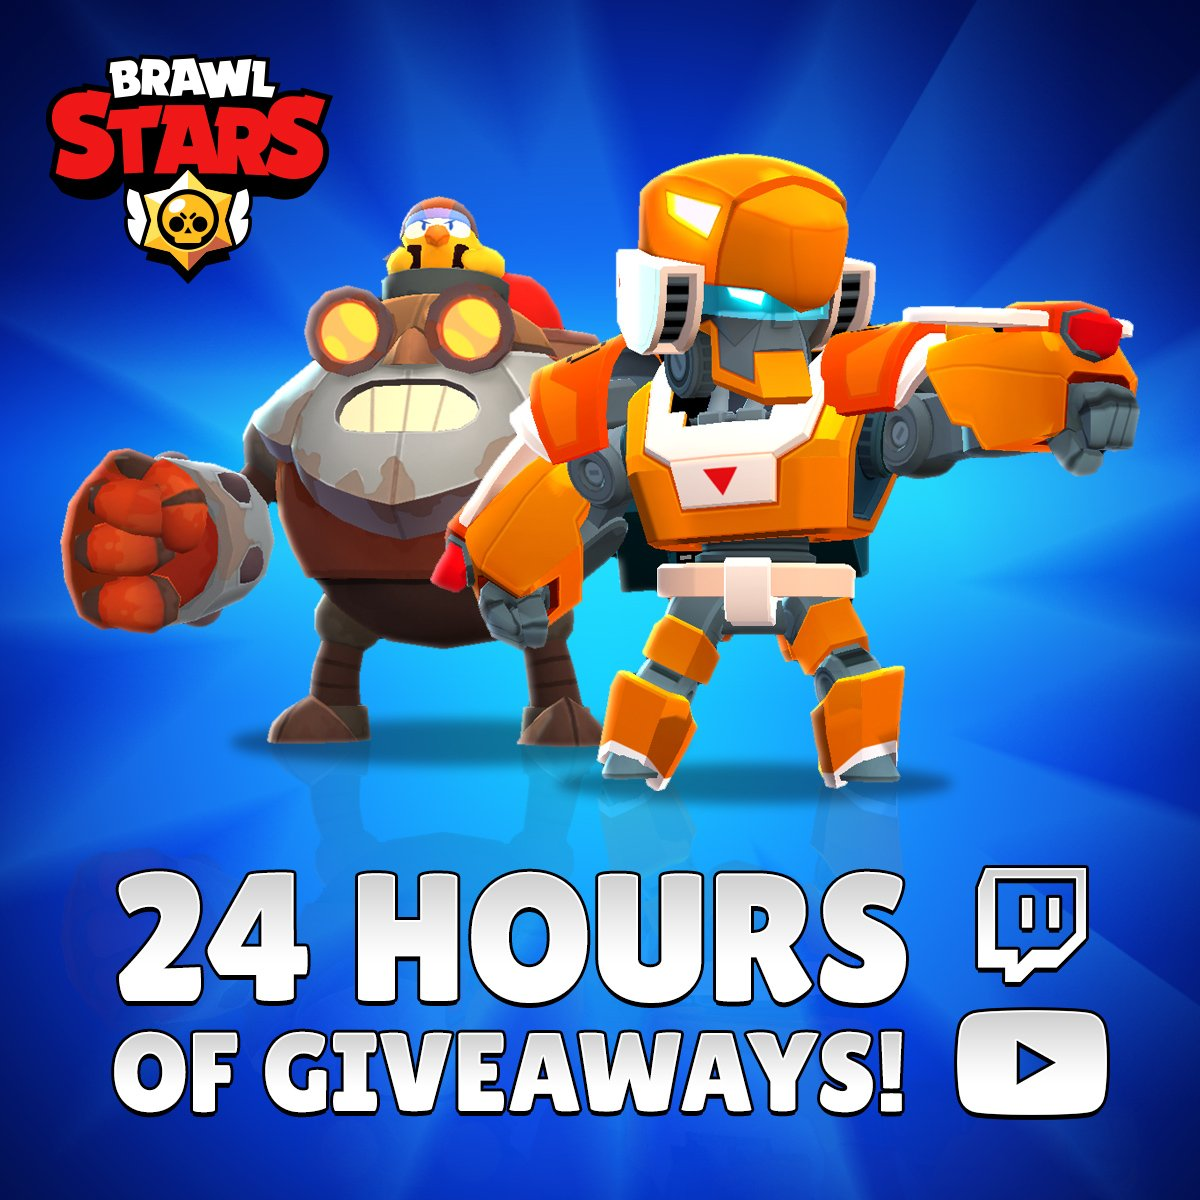 RETWEET for a chance to #WinBrawlSkins! 💥 But if you dont get lucky, dont worry! This Sunday (July 14th) more than 30 Streamers will be hosting giveaways for 24 hours! Check the full schedule here: reddit.com/r/Brawlstars/c…